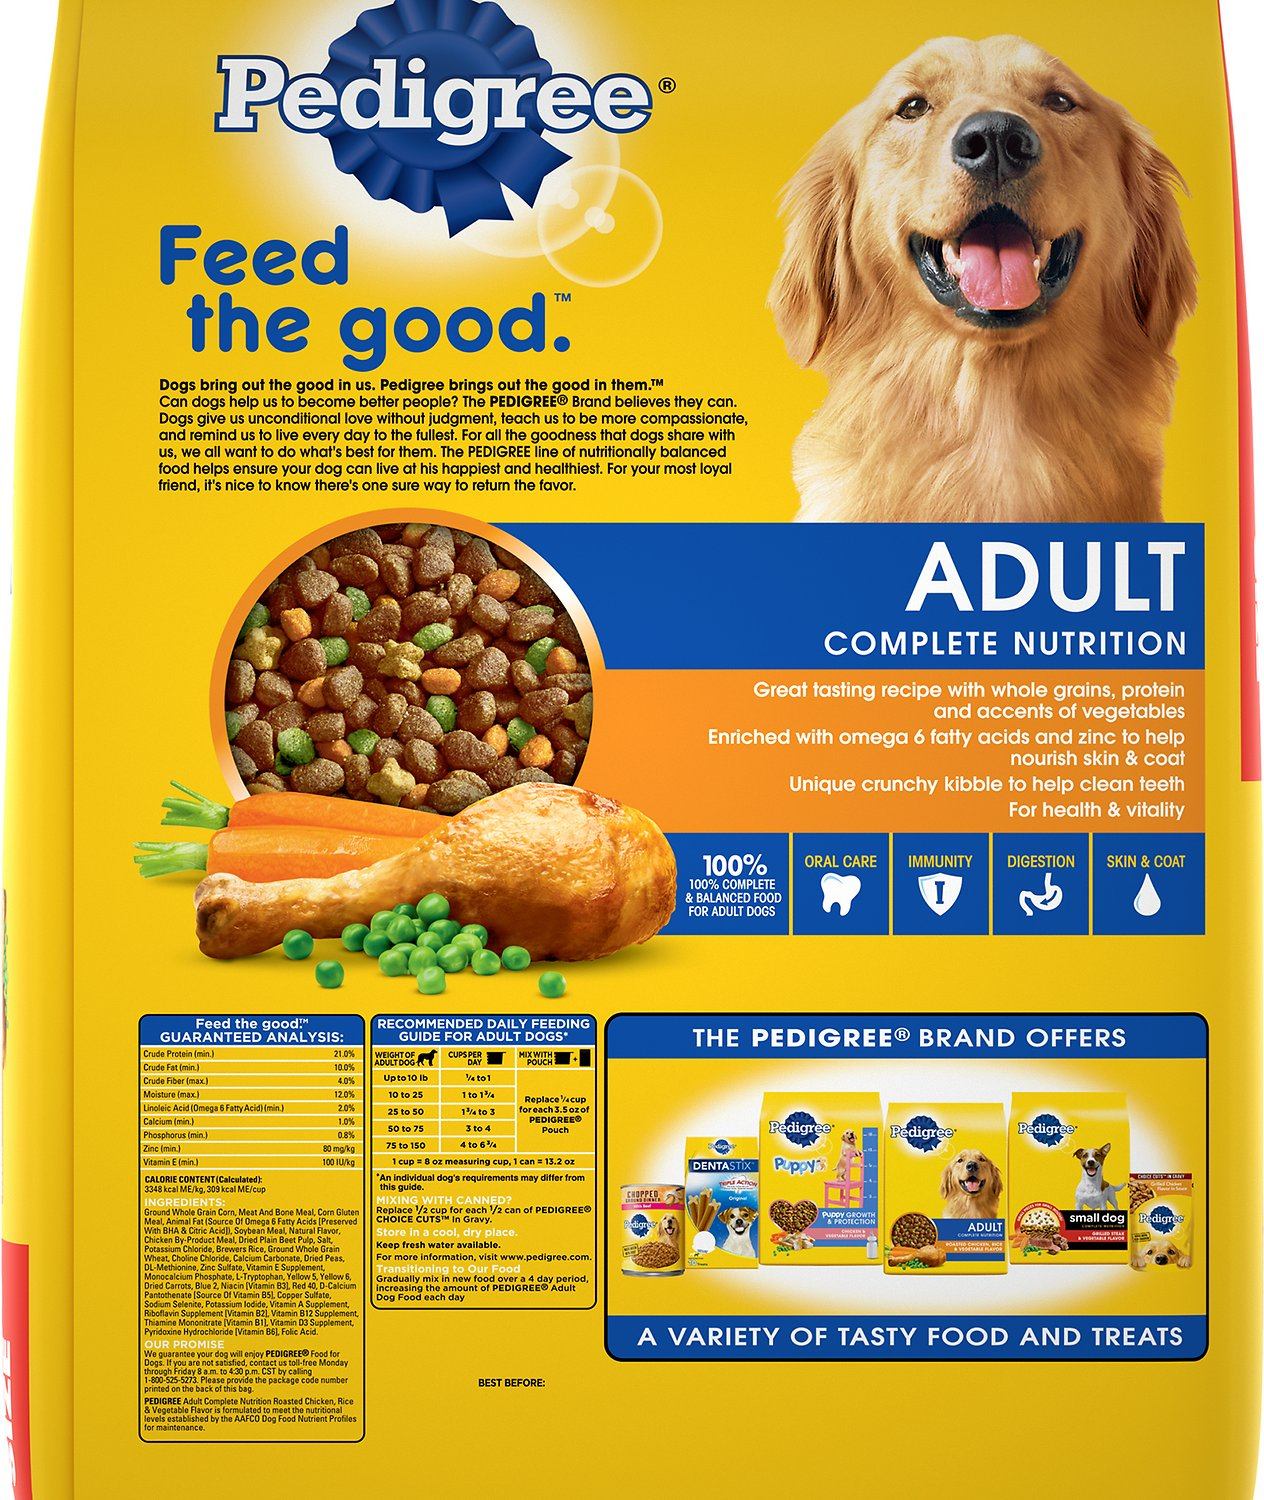 What Are The Best Vegetable For Your Dog